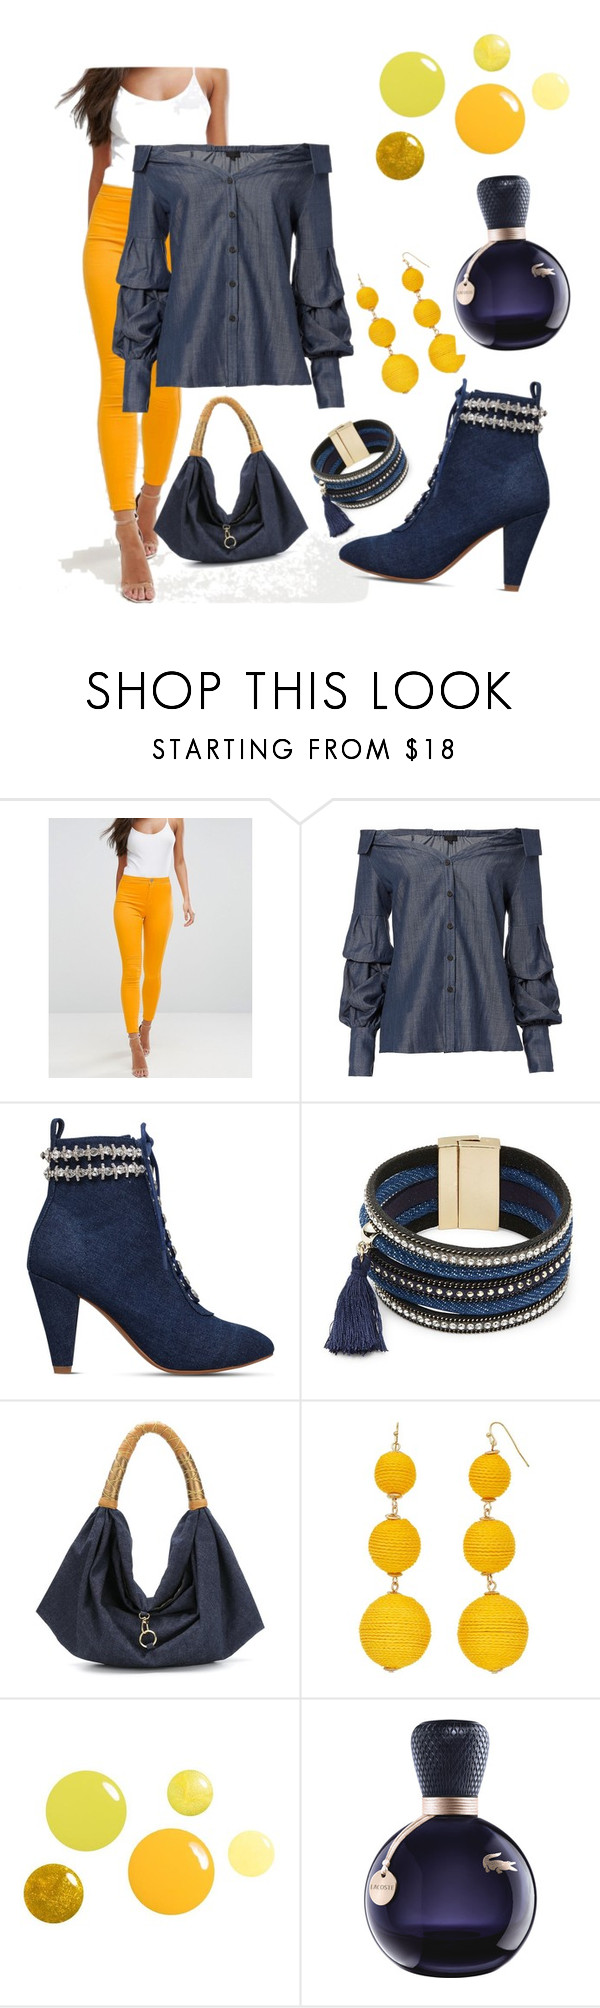 """denim class"" by kkornak on Polyvore featuring ASOS, Exclusive for Intermix, KG Kurt Geiger, Cara, Xaa and Lacoste"